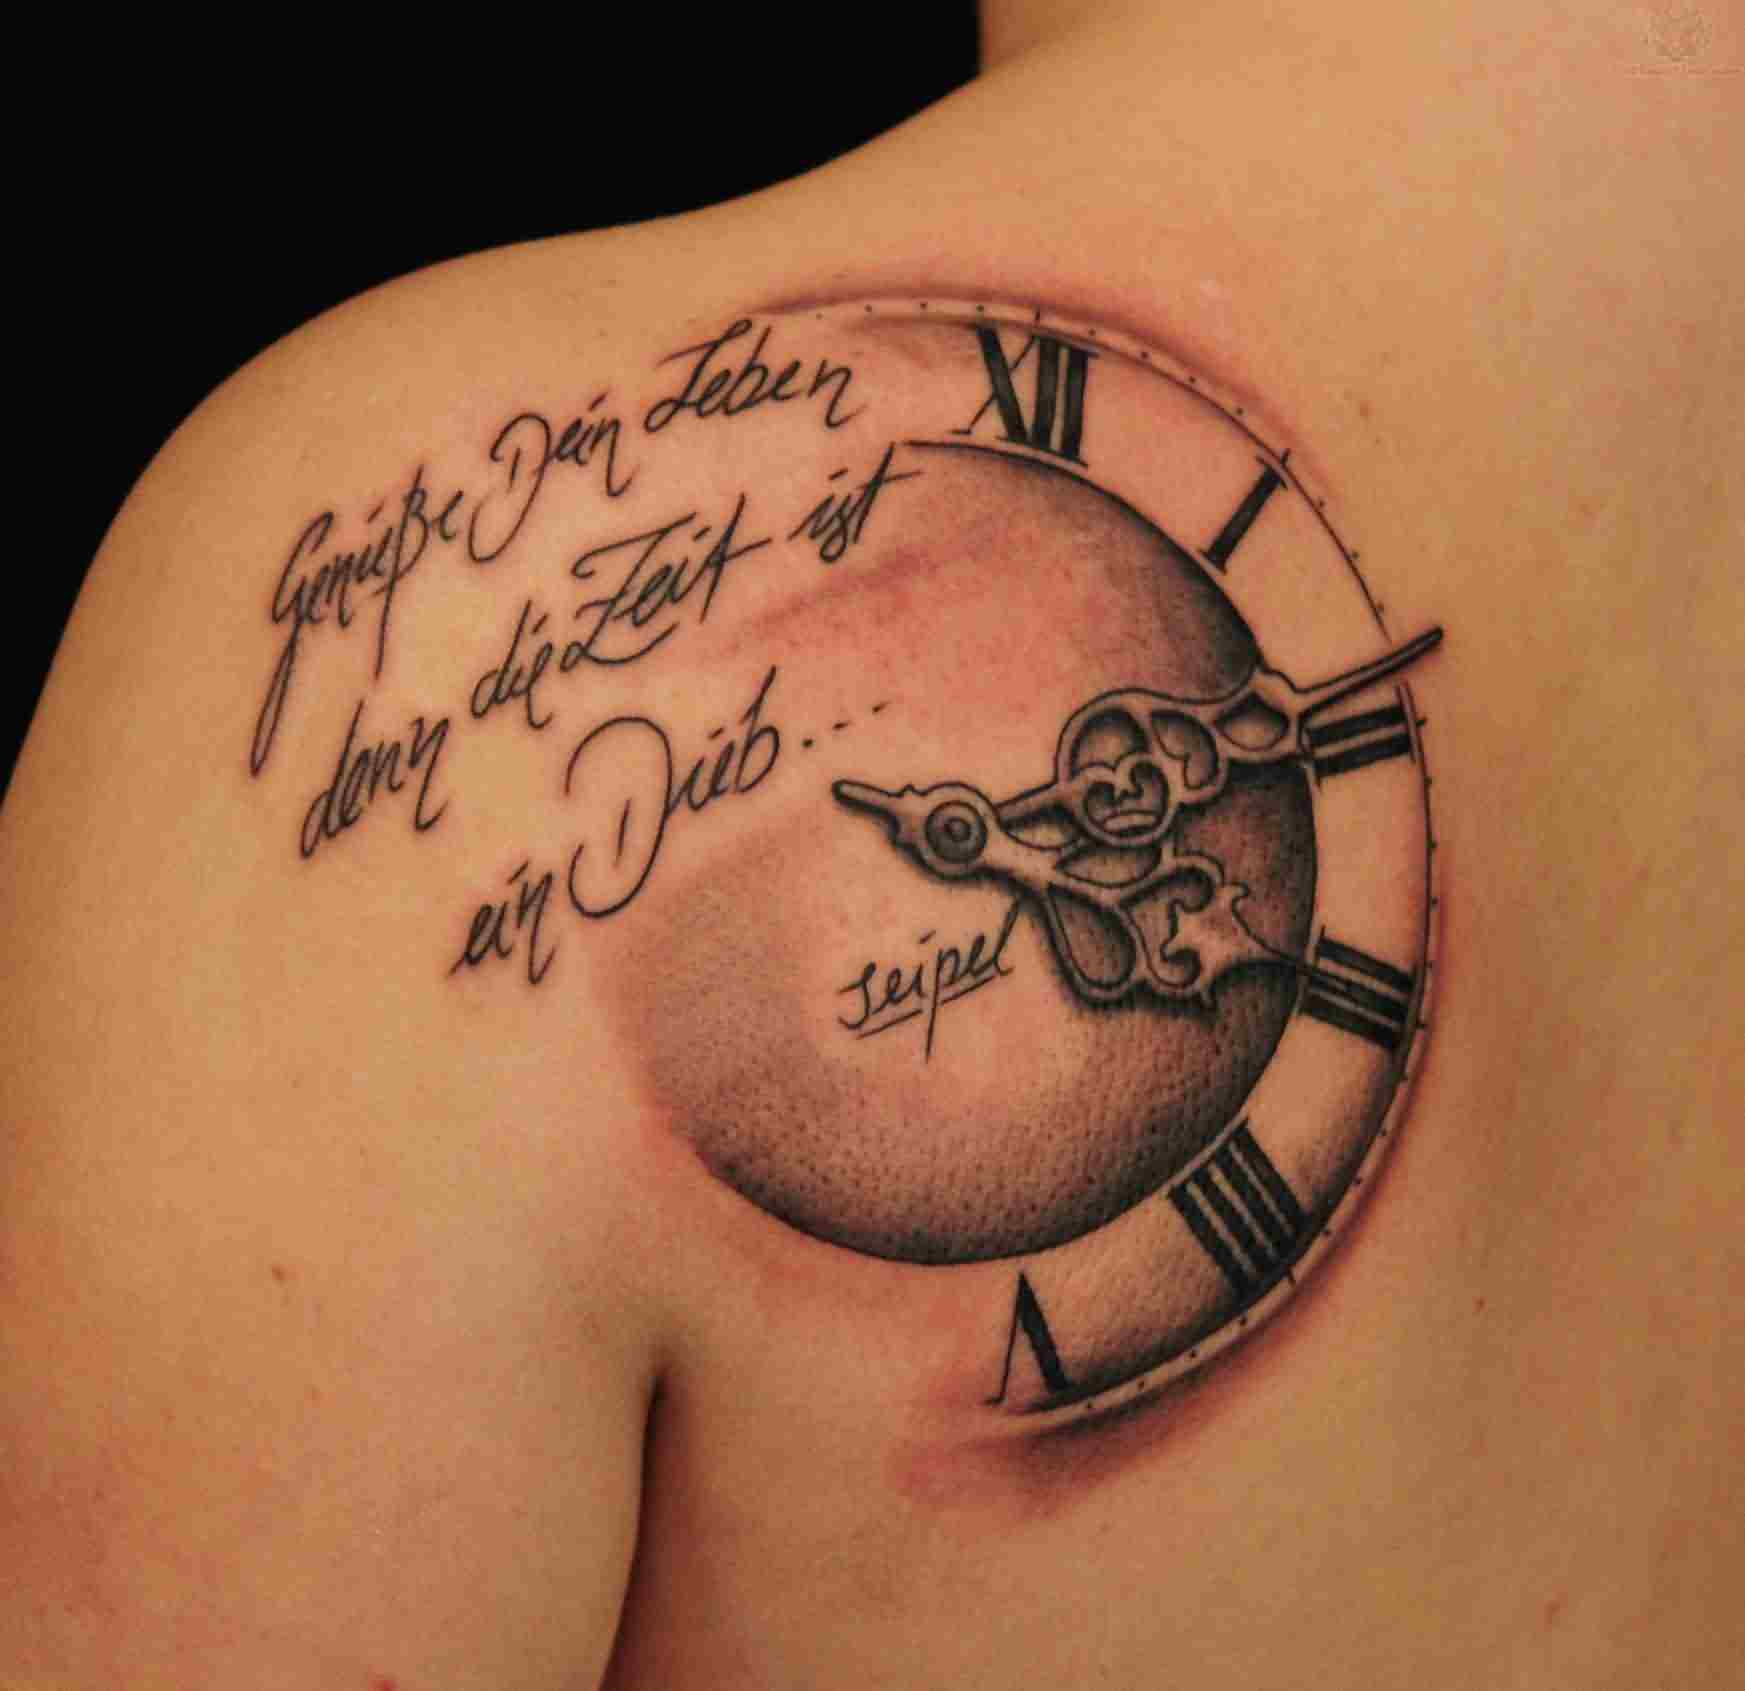 3D Lettering And Half Clock Tattoos On Back Shoulder